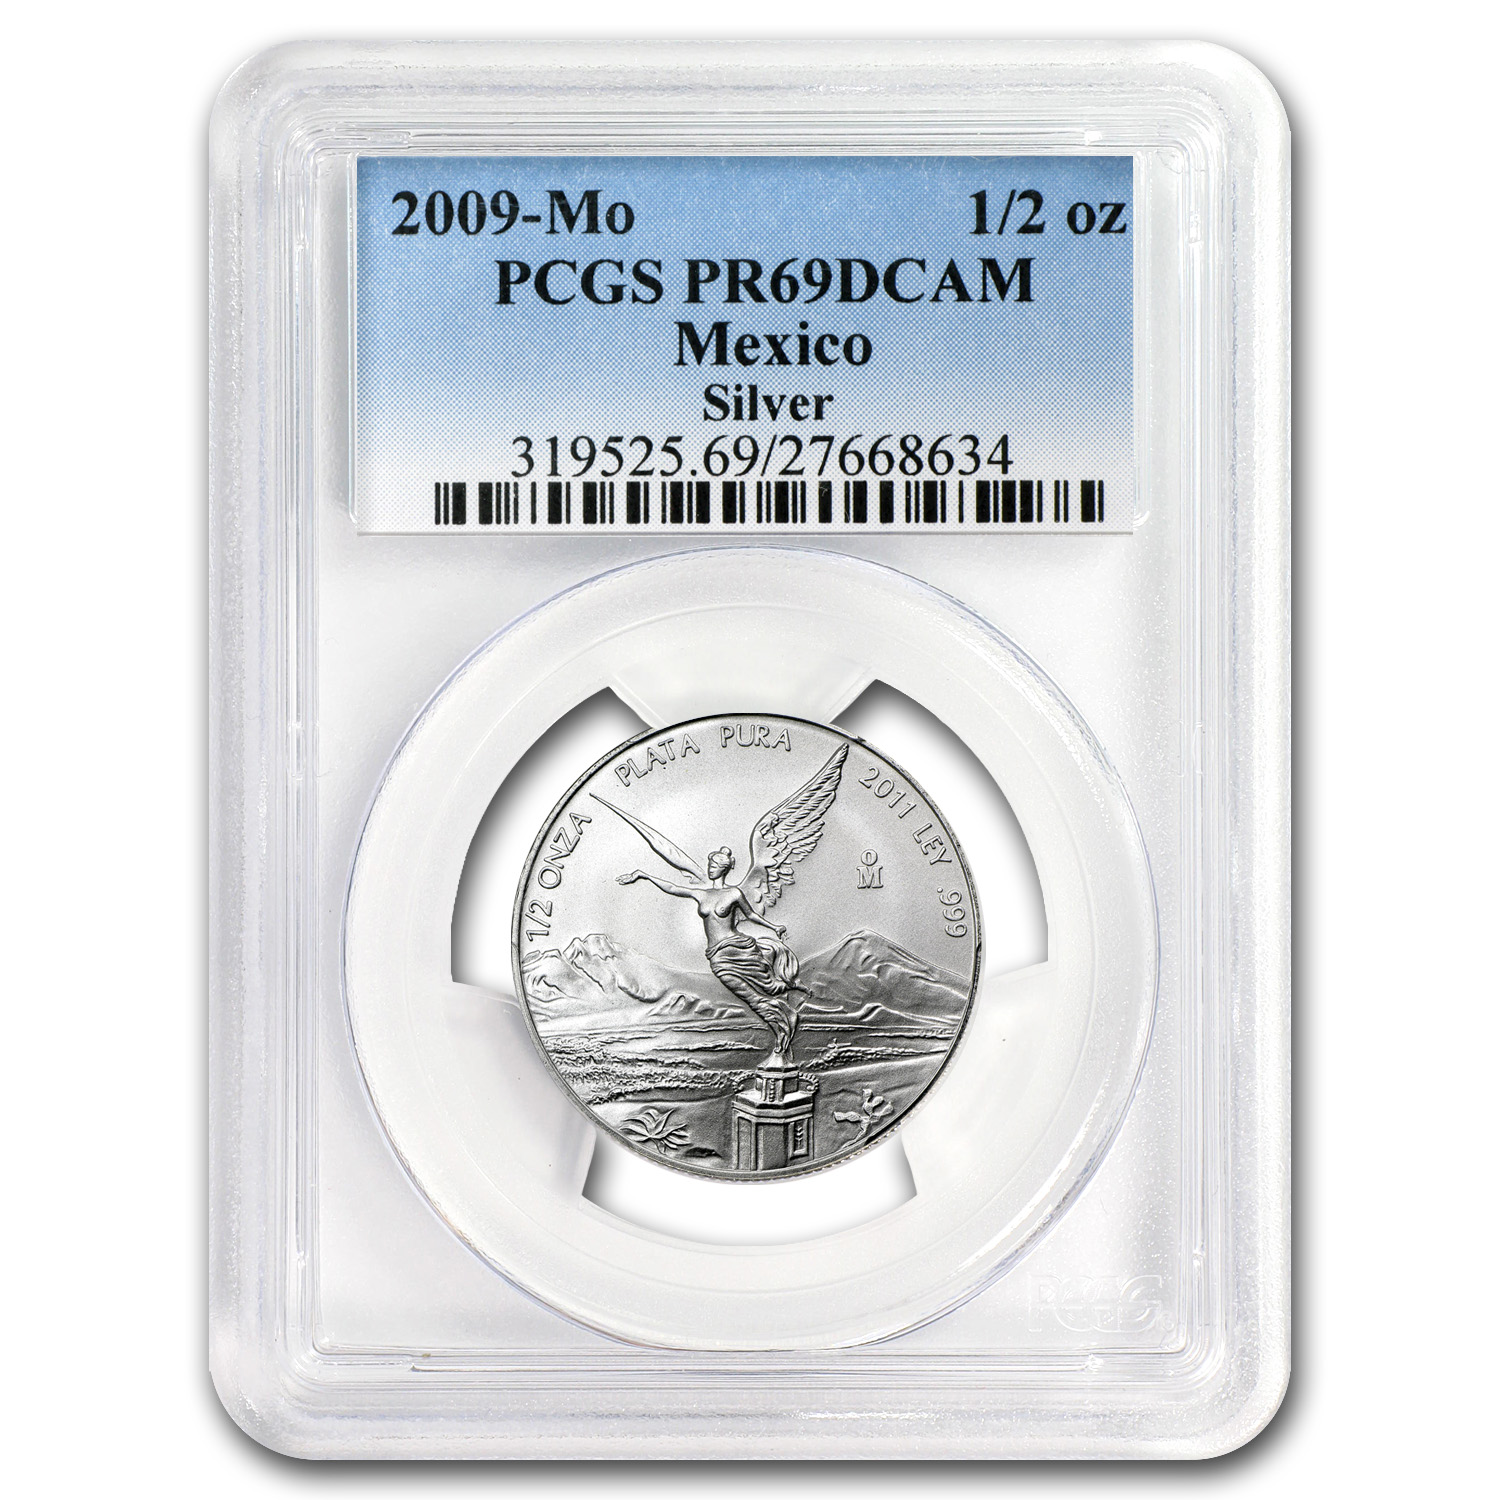 2009 Mexico 1/2 oz Proof Silver Libertad PR-69 PCGS